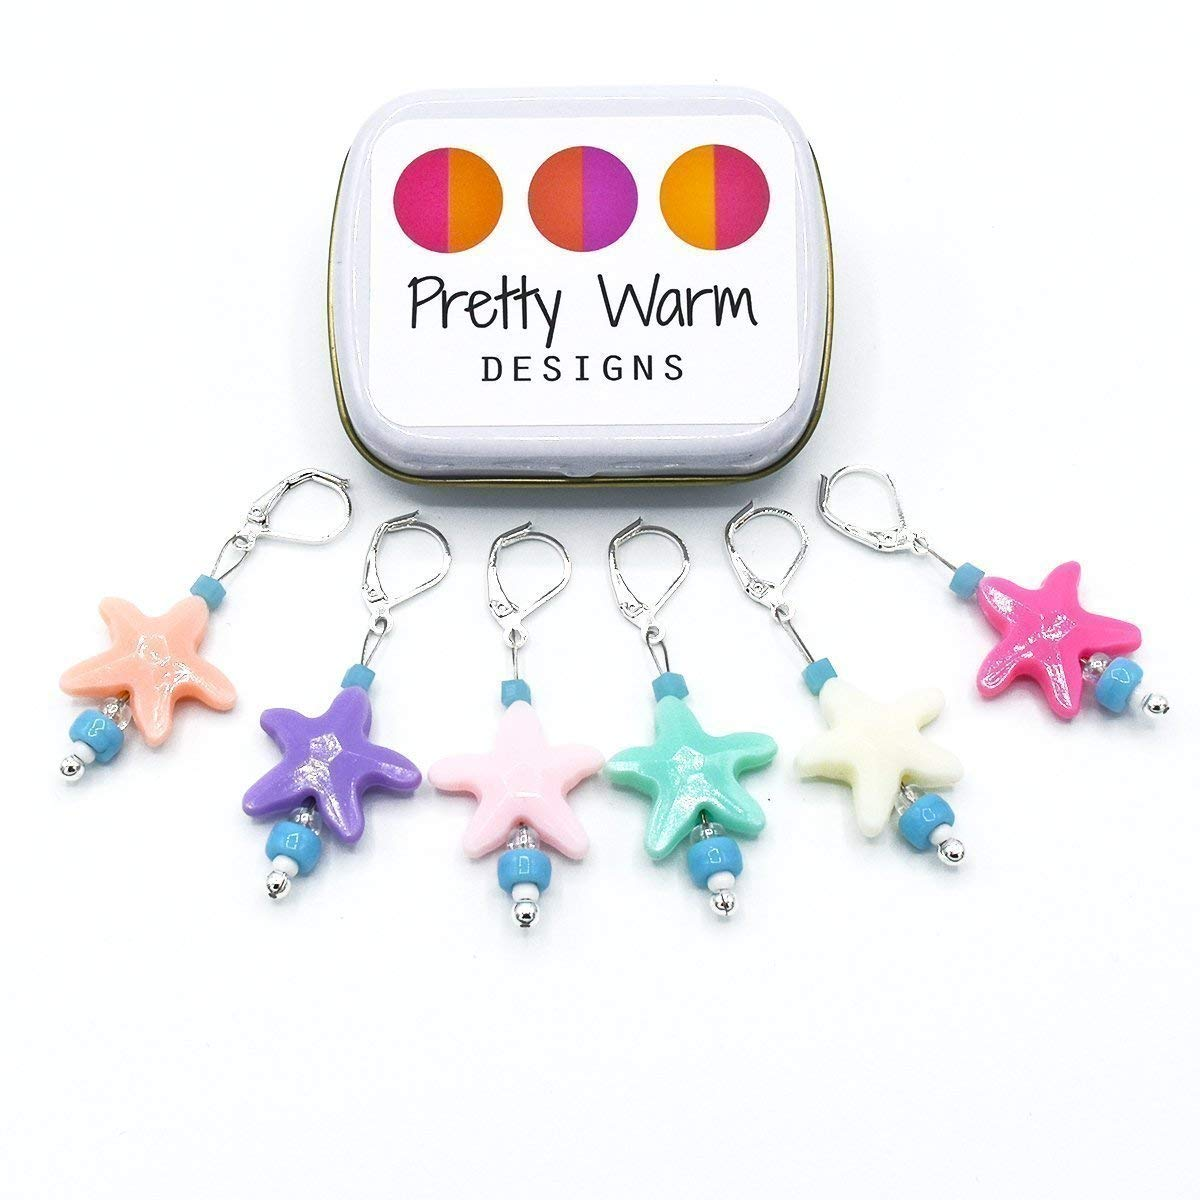 Starfish Locking Stitch Markers Jewelry for Crochet (Set of 6 with Tin)